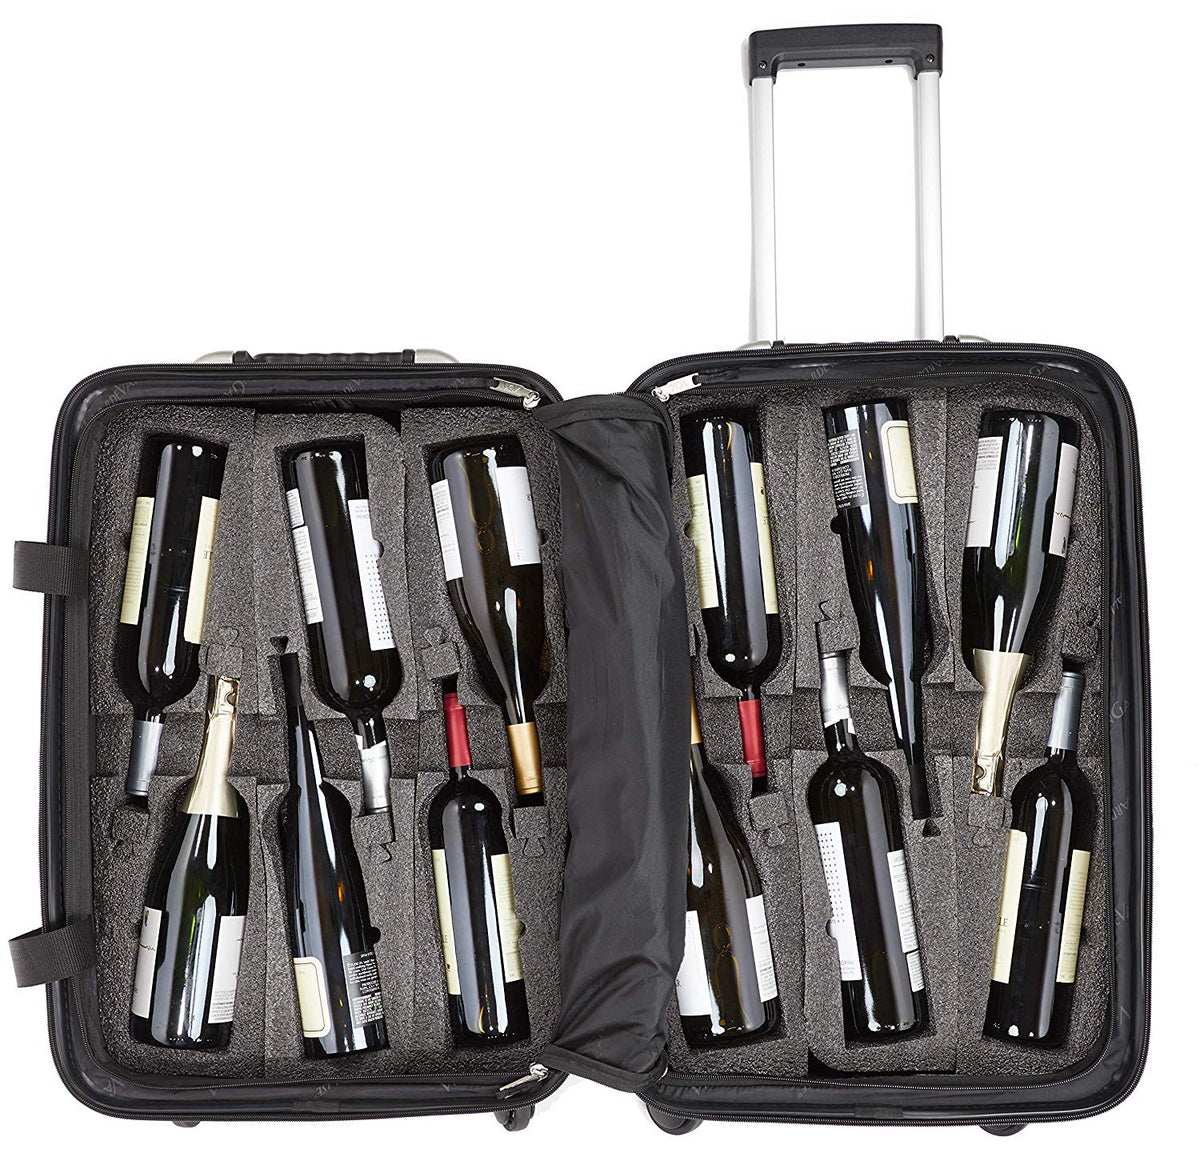 VinGardeValise - Up to 12 Bottles & All Purpose Wine Travel Suitcase (Silver)